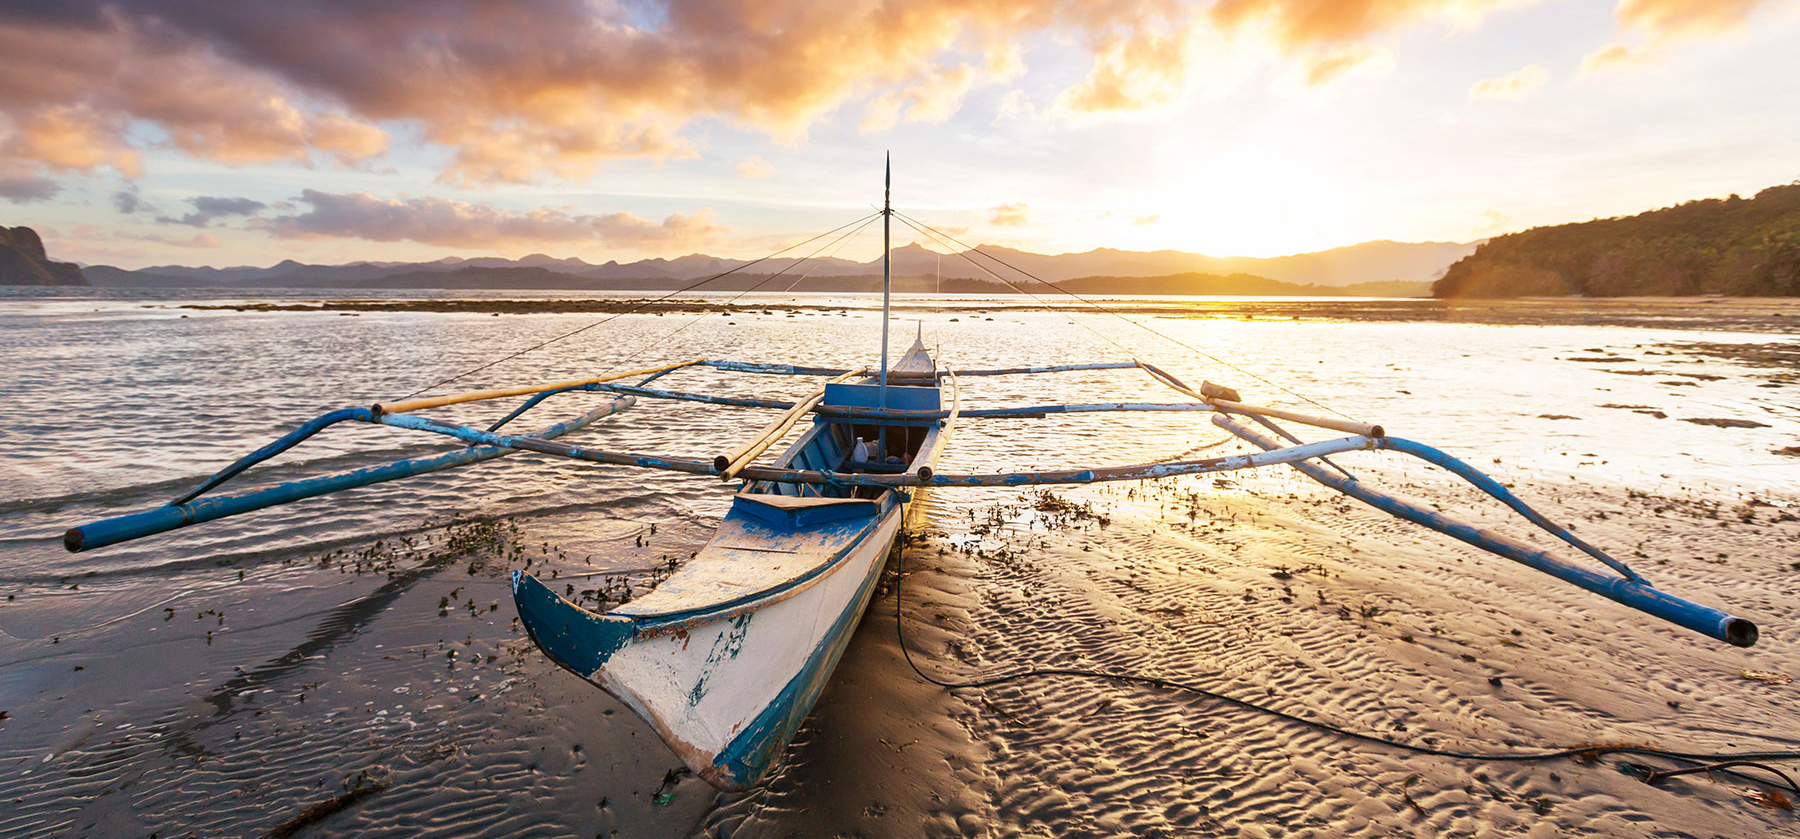 Boat in Philippines